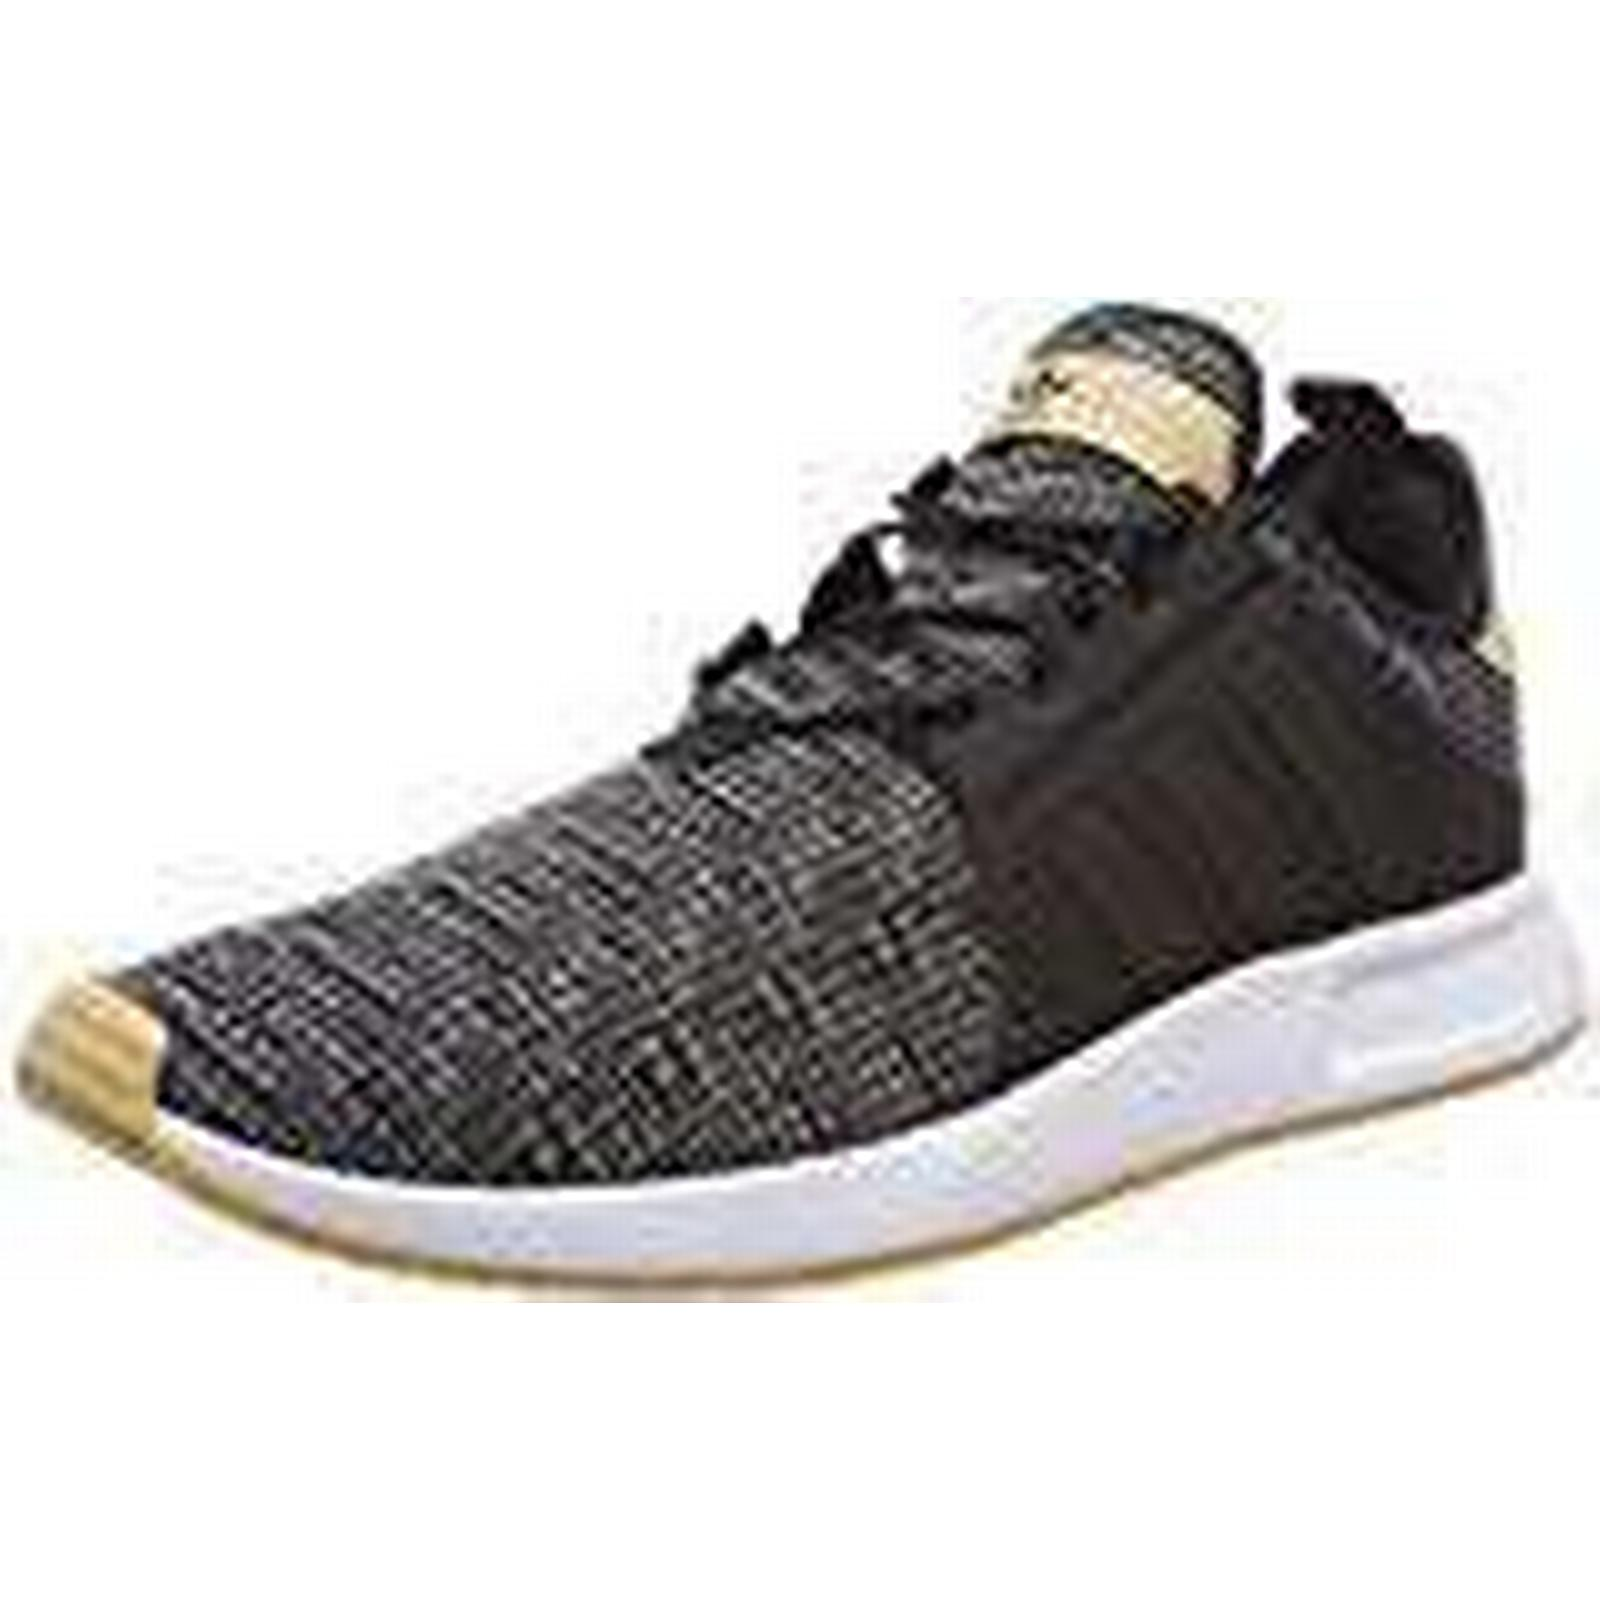 Adidas Black/Gum Originals Men's X_PLR Low-Top Sneakers, Black (Core Black/Core Black/Gum Adidas 3 001), 8.5 UK 234095